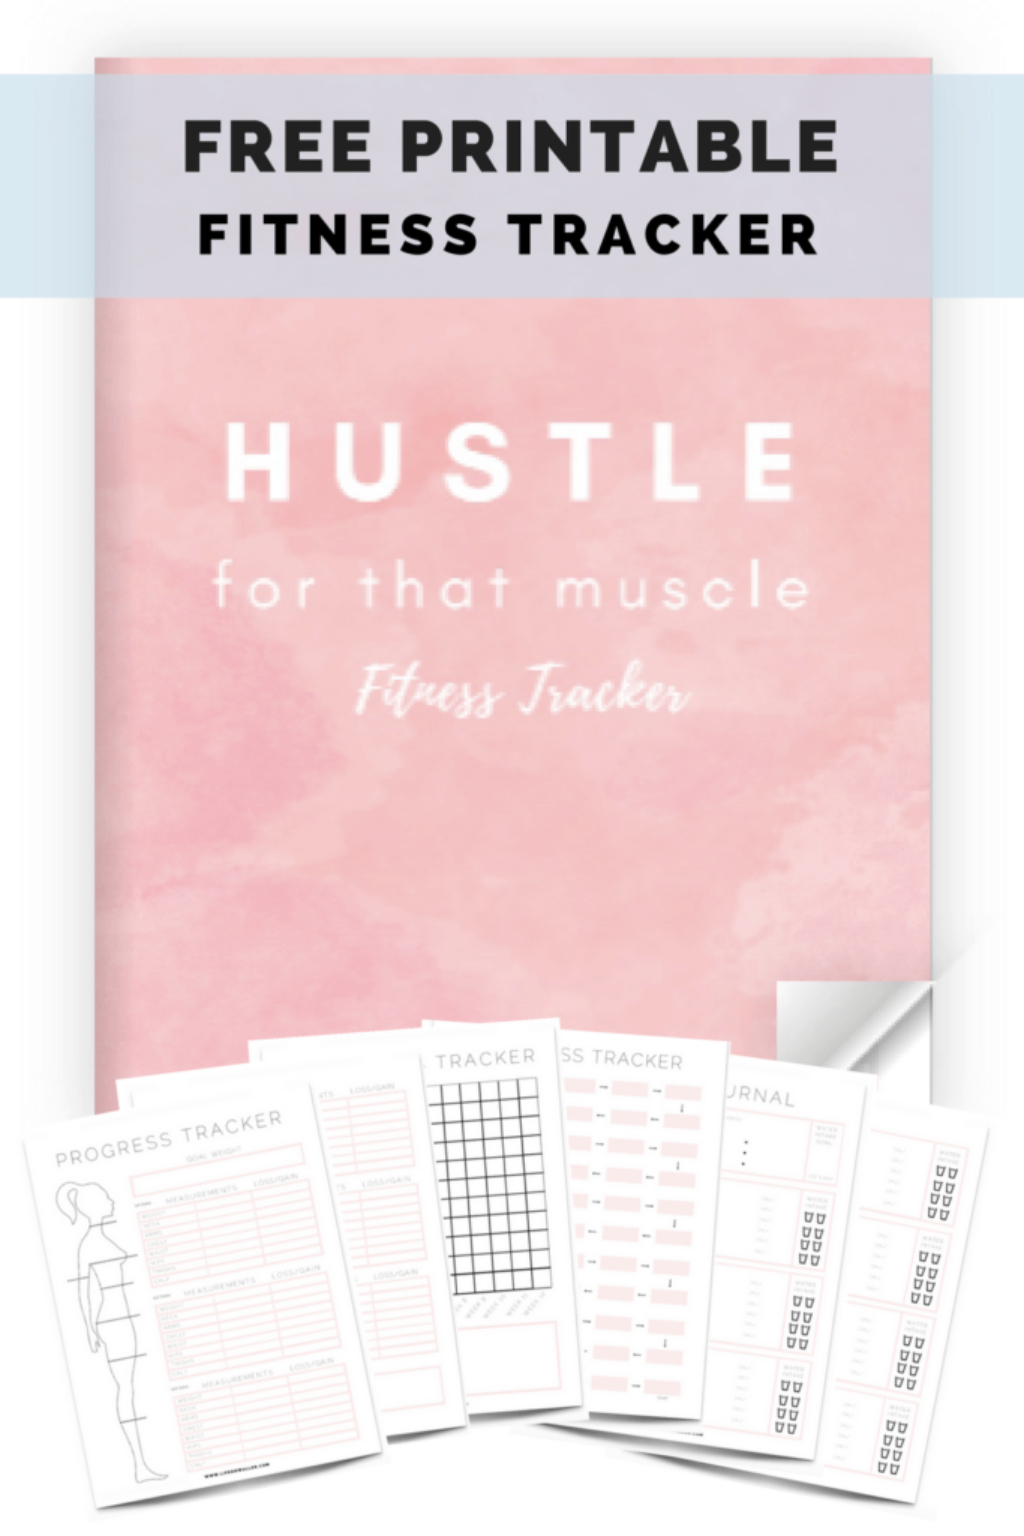 Free Printable Fitness Tracker - Cassie Scroggins - Free Printable Fitness Tracker